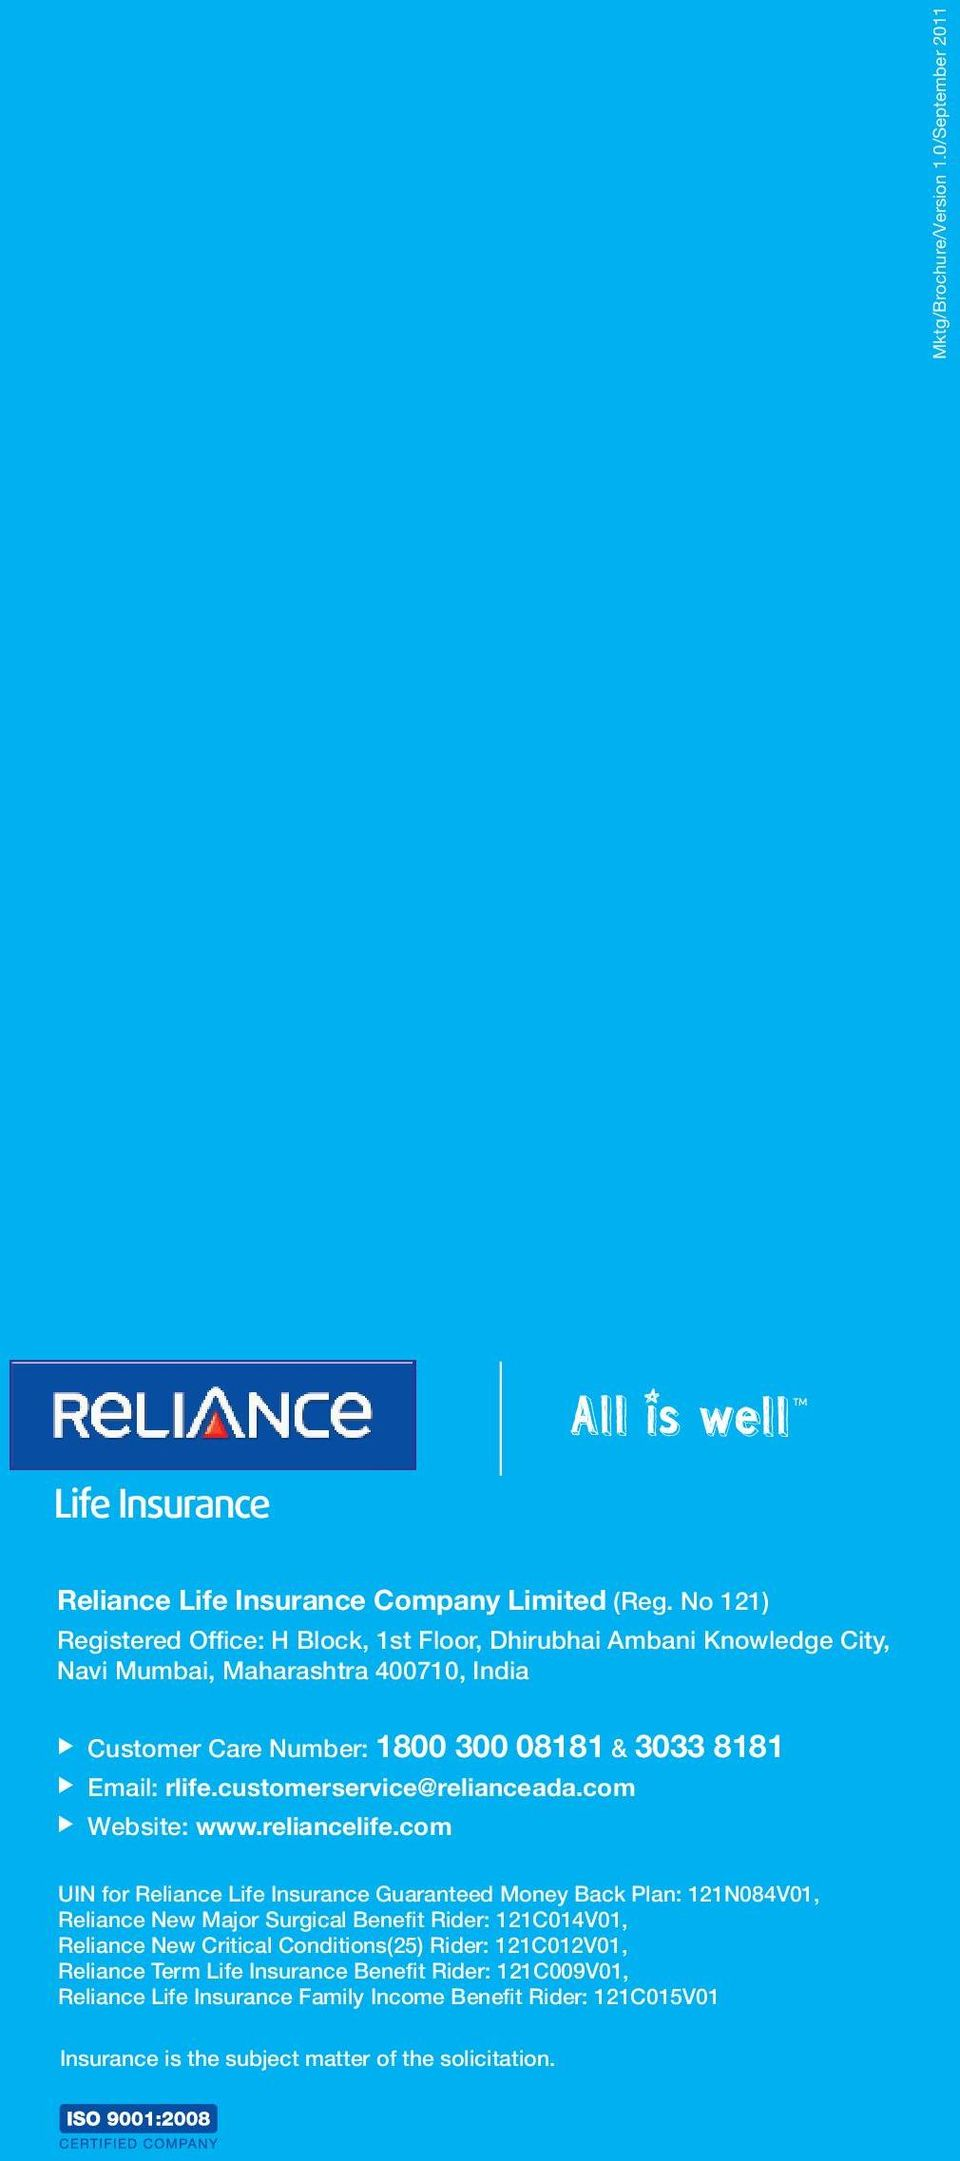 Email: rlife.customerservice@relianceada.com Website: www.reliancelife.